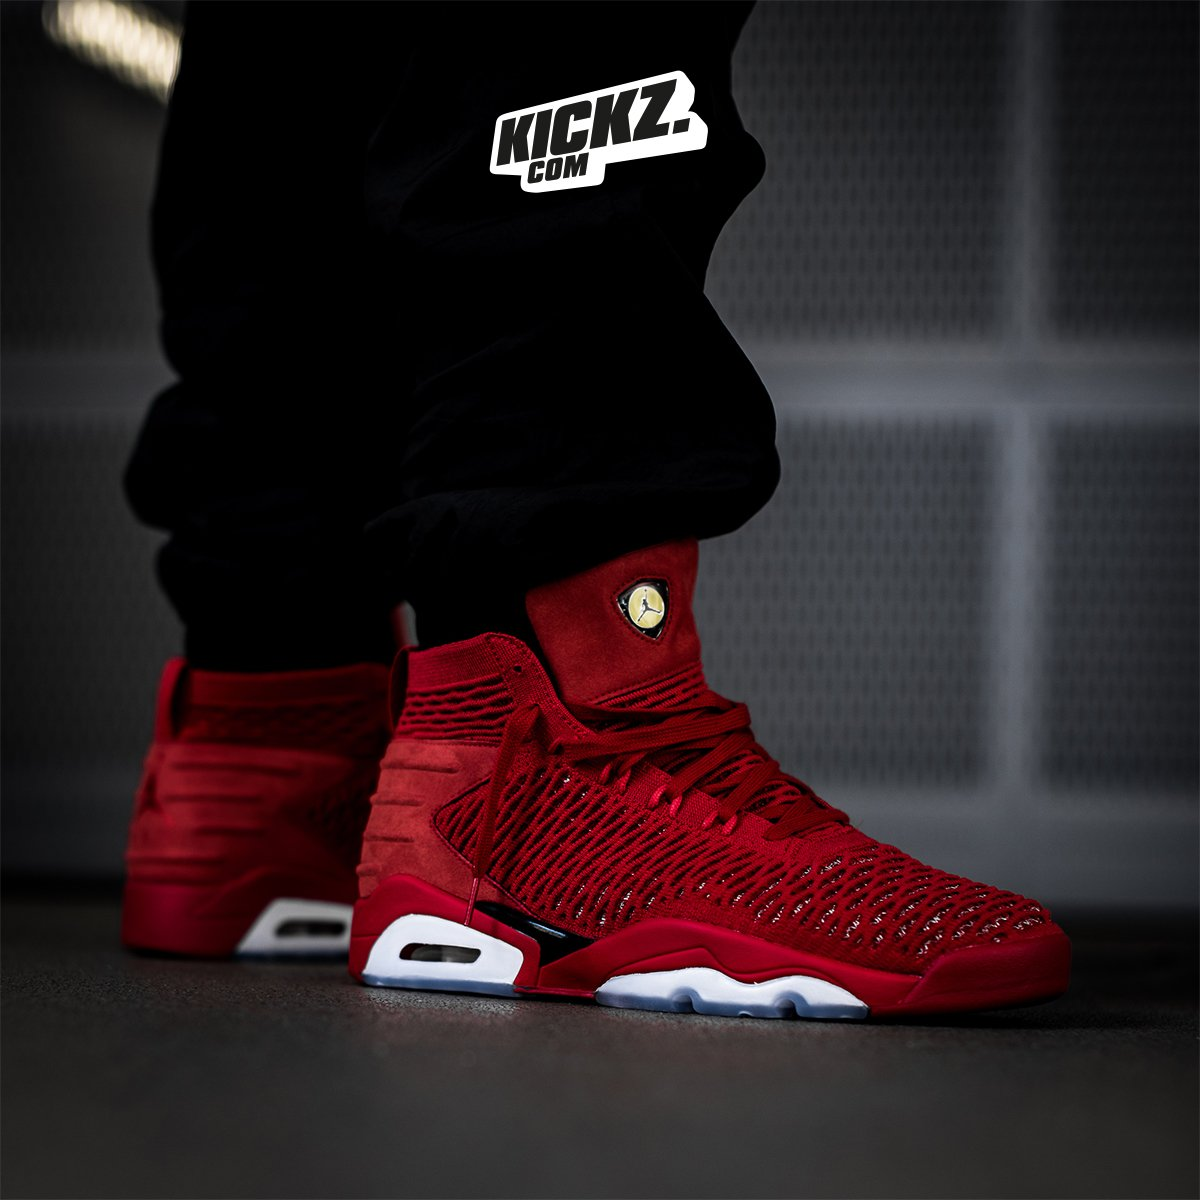 101961f9fc4 Flyknit upper plus Air Jordan 6 sole plus Ferrari inspiration. The Jordan  Flyknit Elevation 23 is available now at http://KICKZ.com and in selected  stores! ...